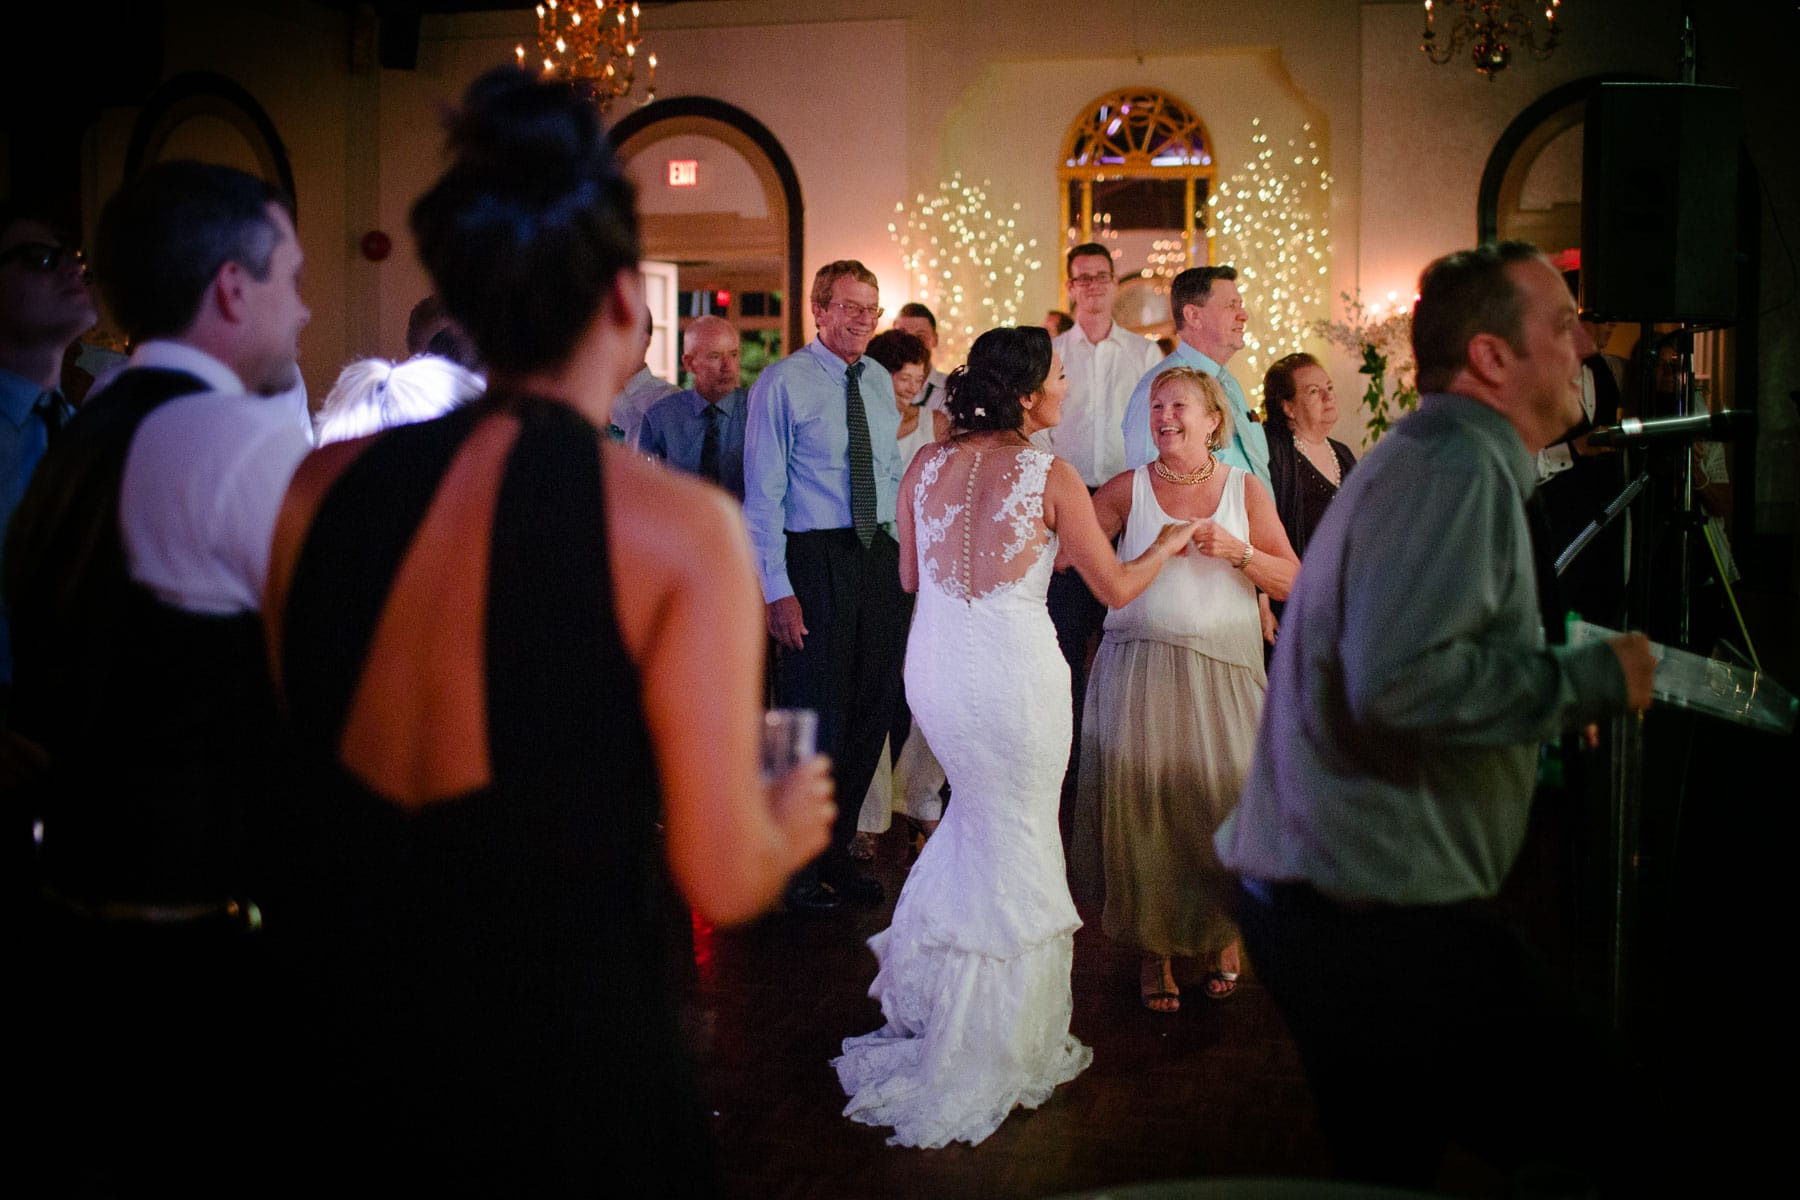 The bride dances with an older woman on the crowded dance floor at the Boulevard Club wedding.